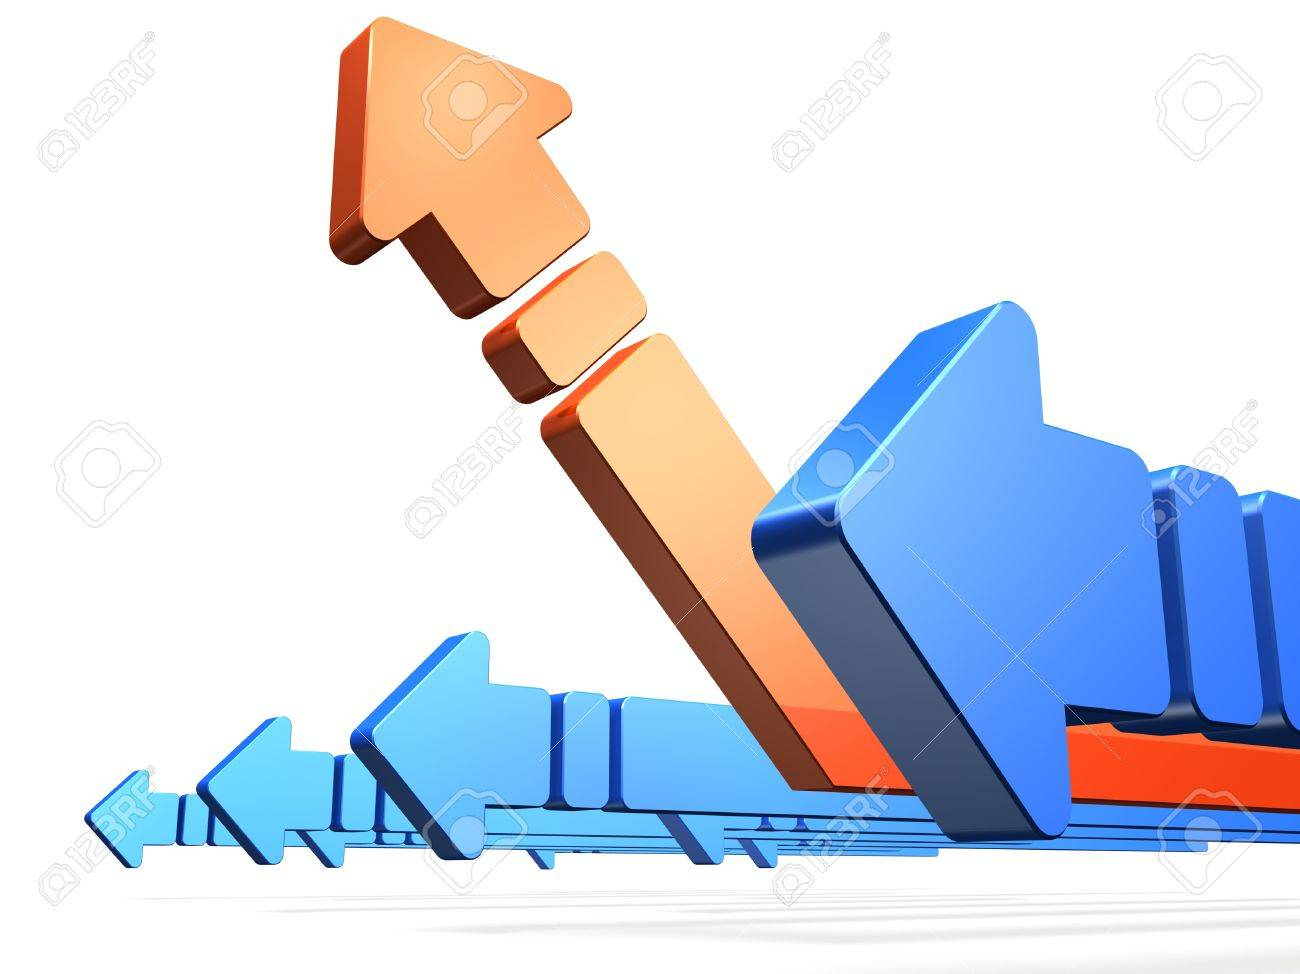 Arrow to rise is a sign that things get better. Stock Photo - 16544668